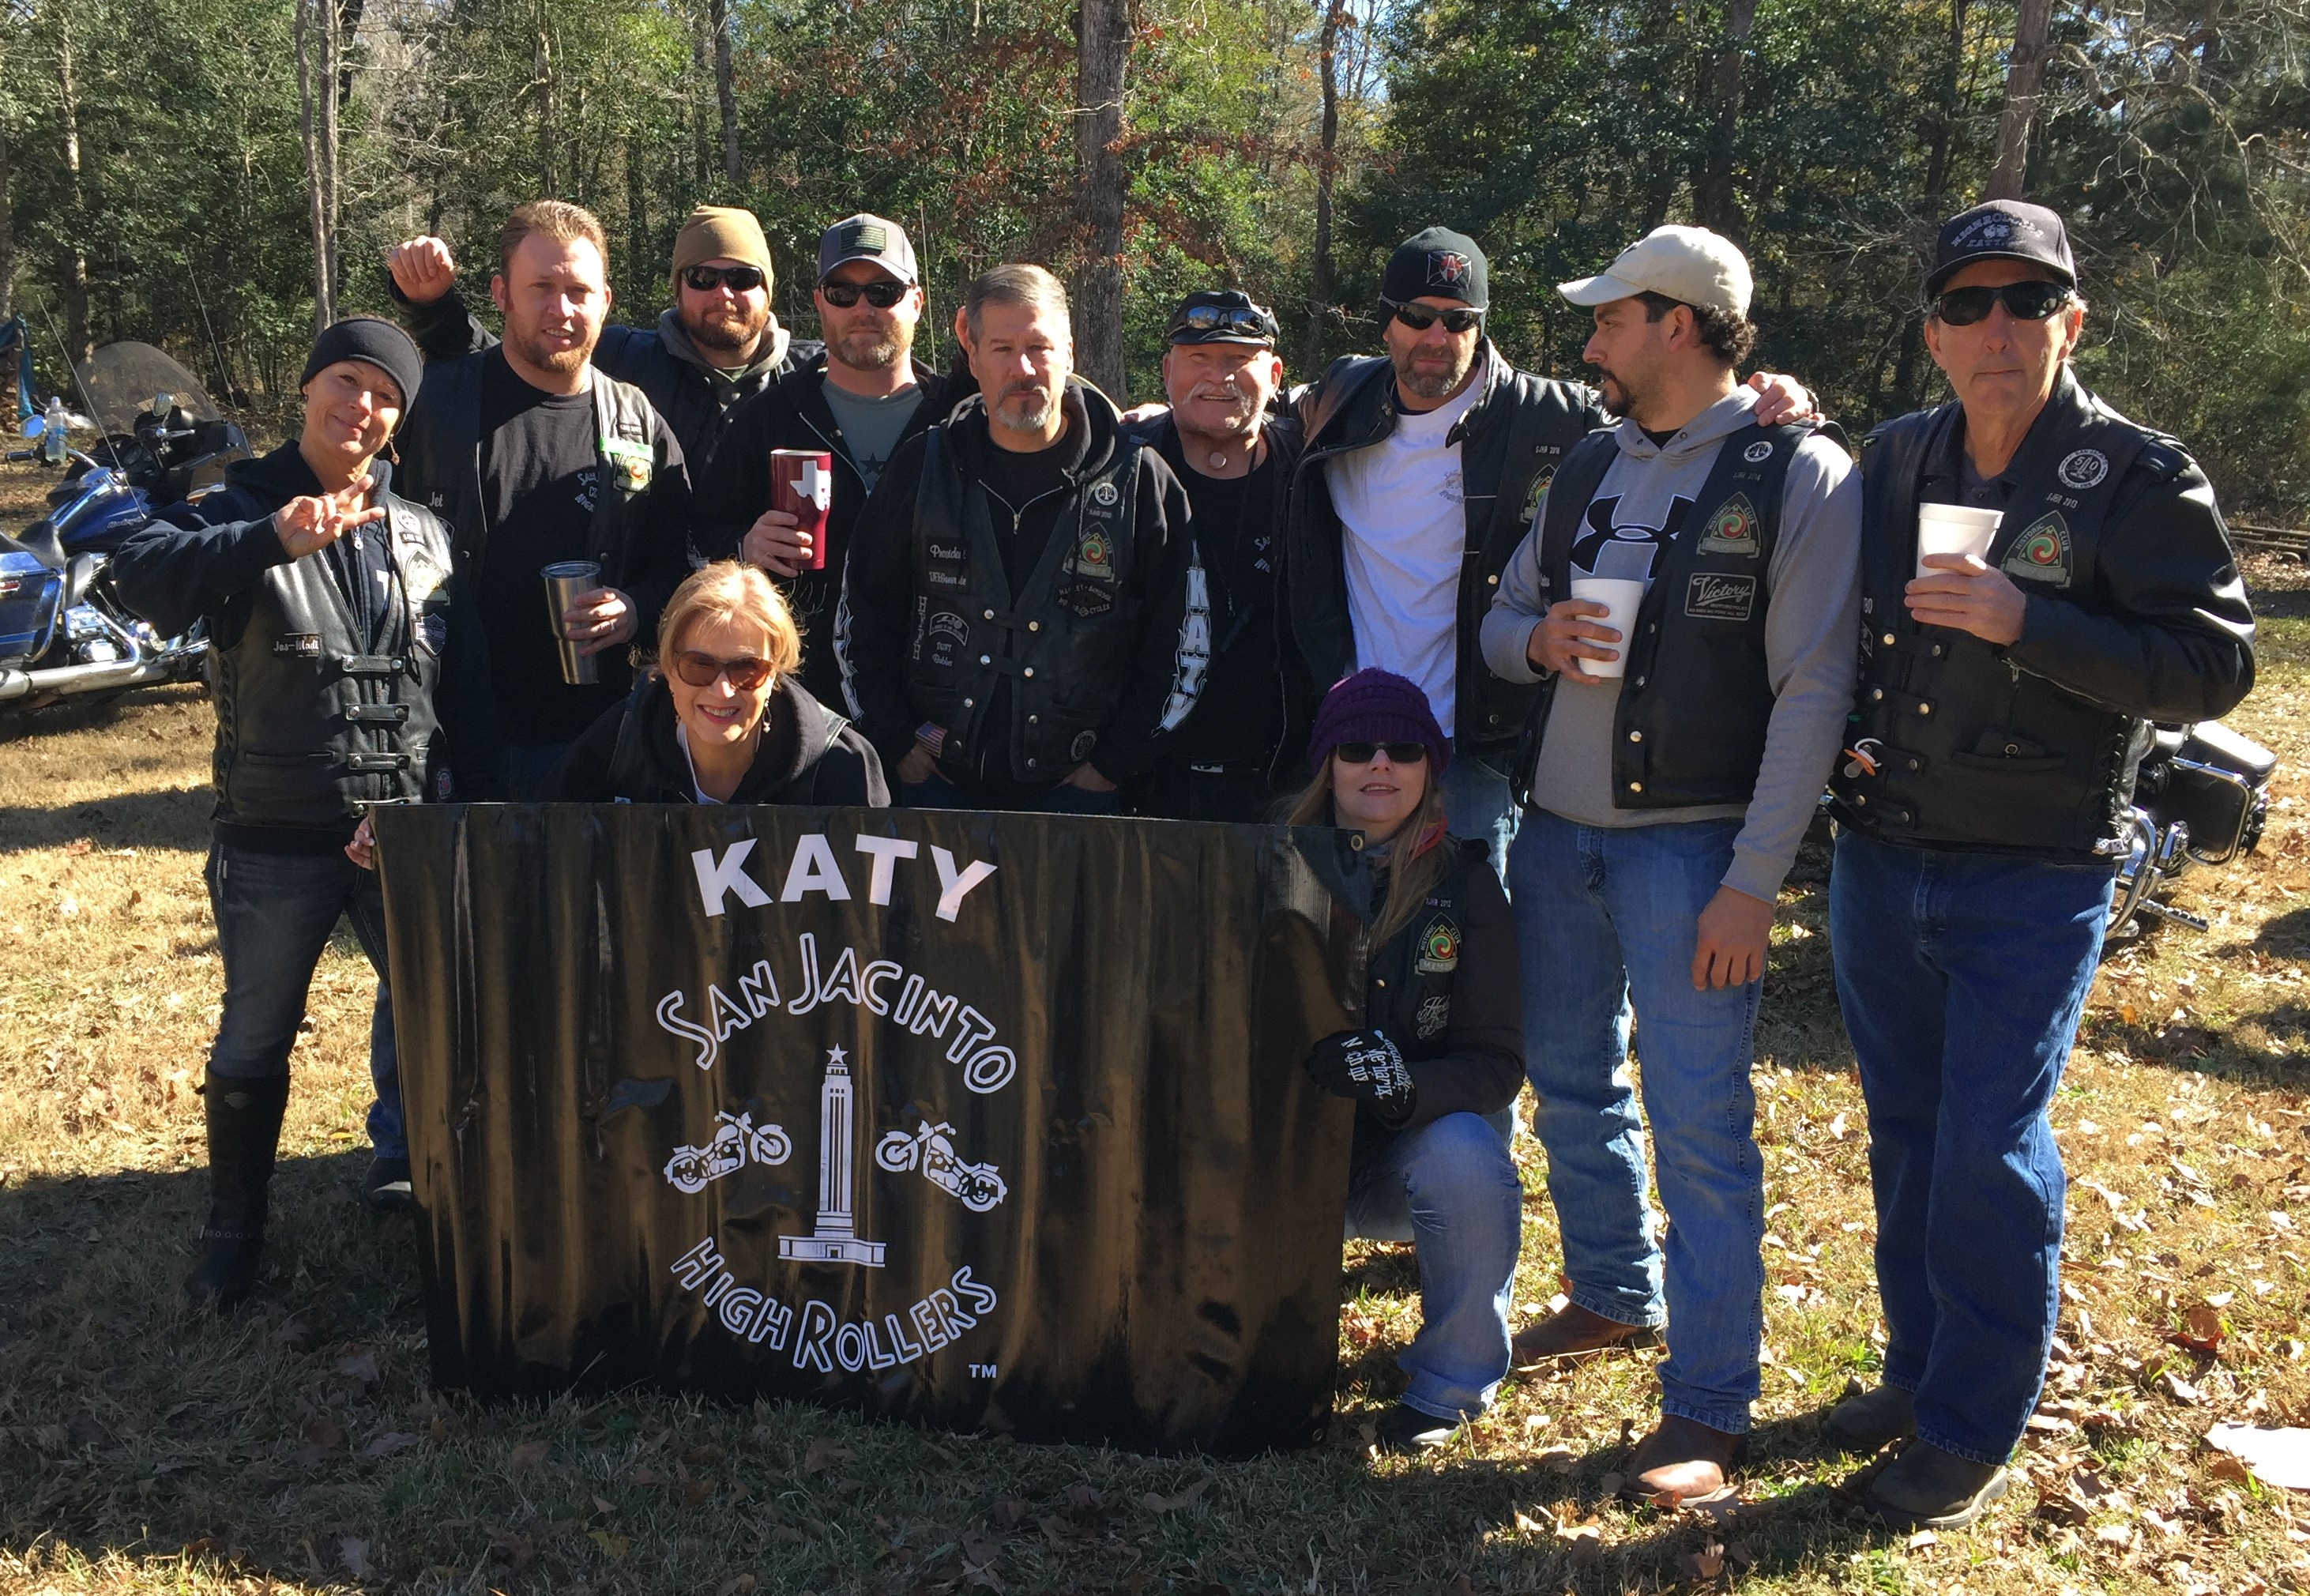 SJHRMC Katy Chapter 10th Anniversary Party - January 2018